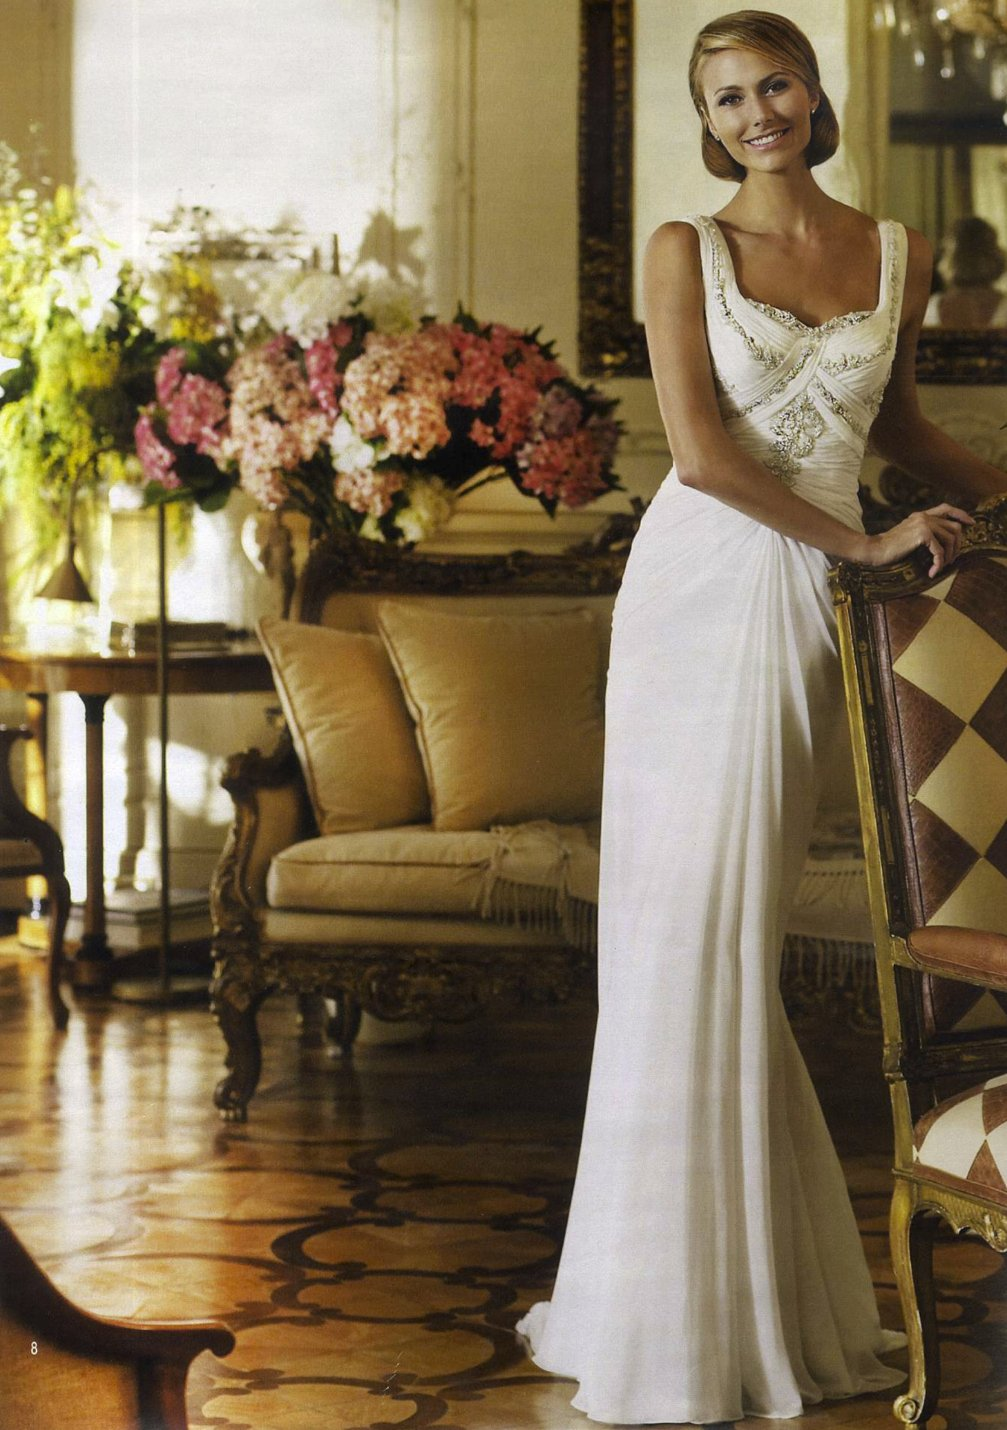 George-clooney-gf-stacy-keibler-in-wedding-dresses-by-pronovias-spring-2013-4.full